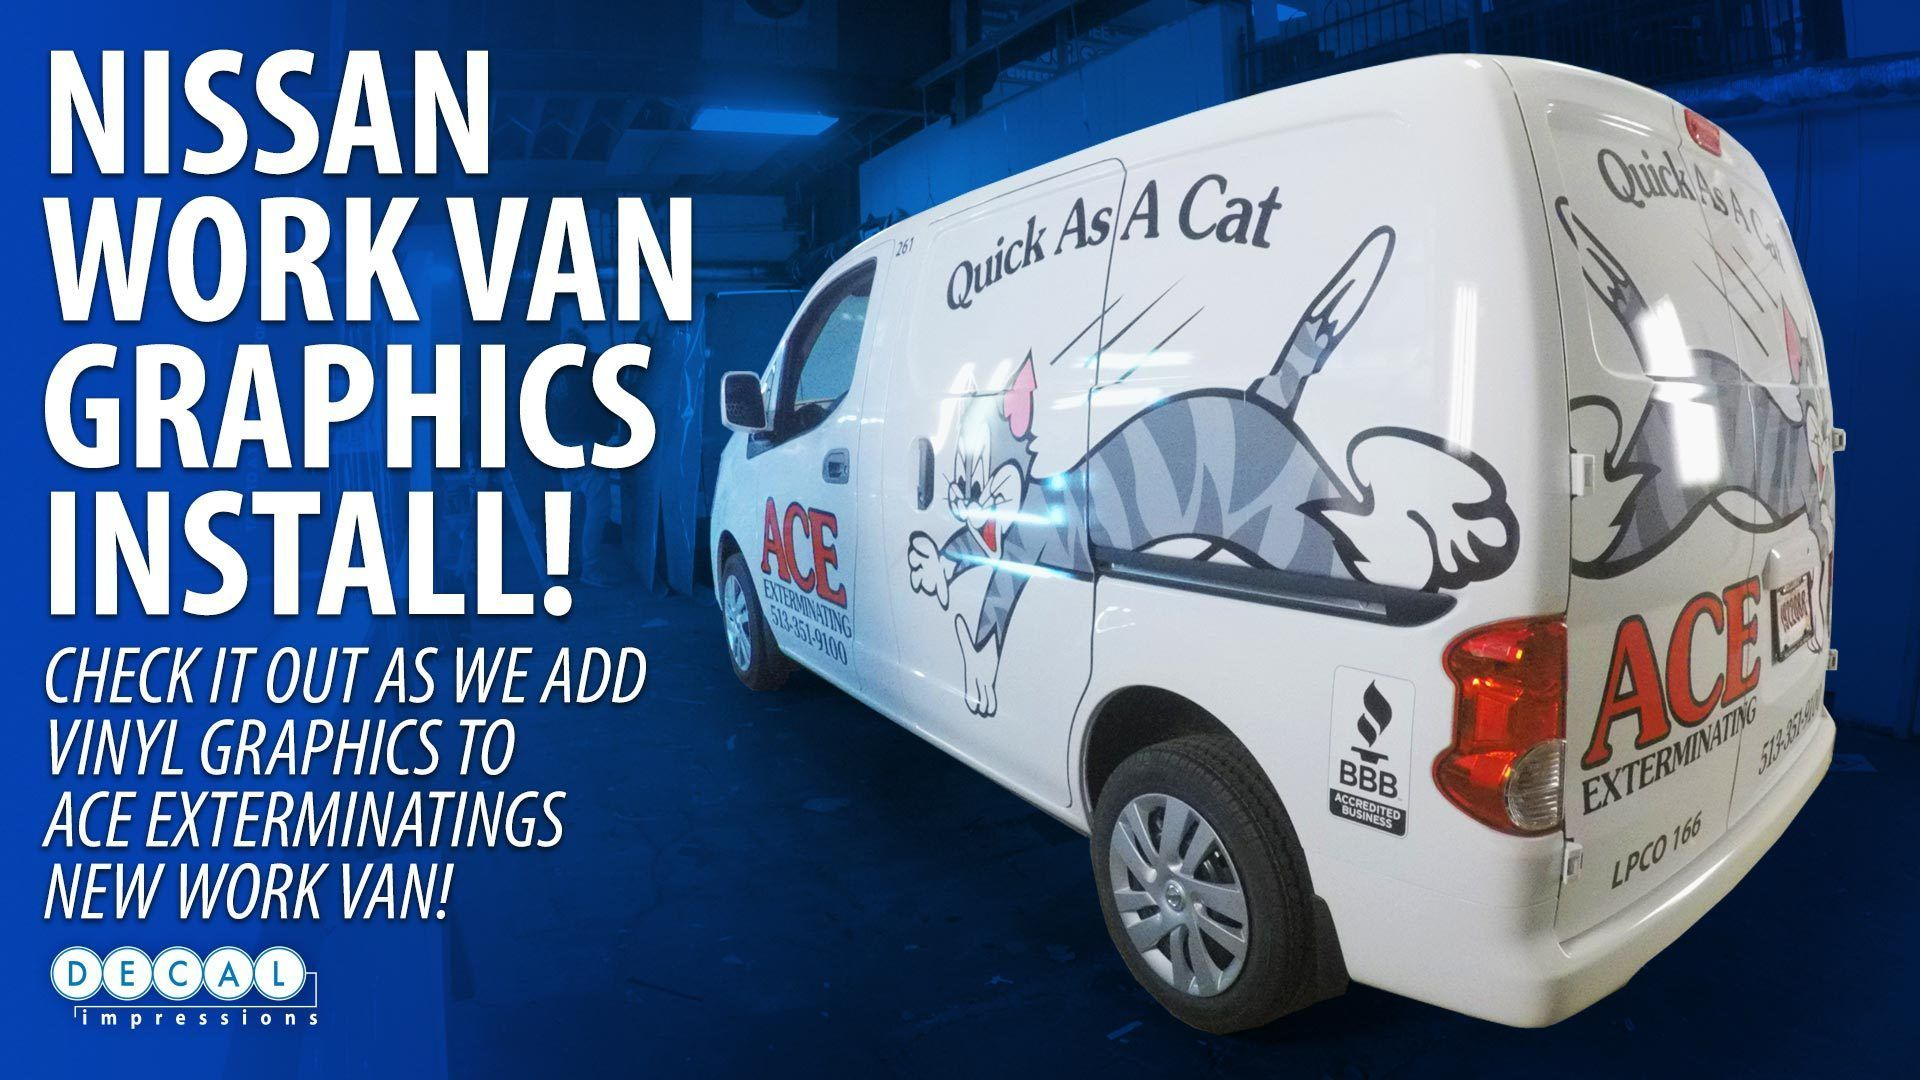 Ace Exterminating Van Wrapping